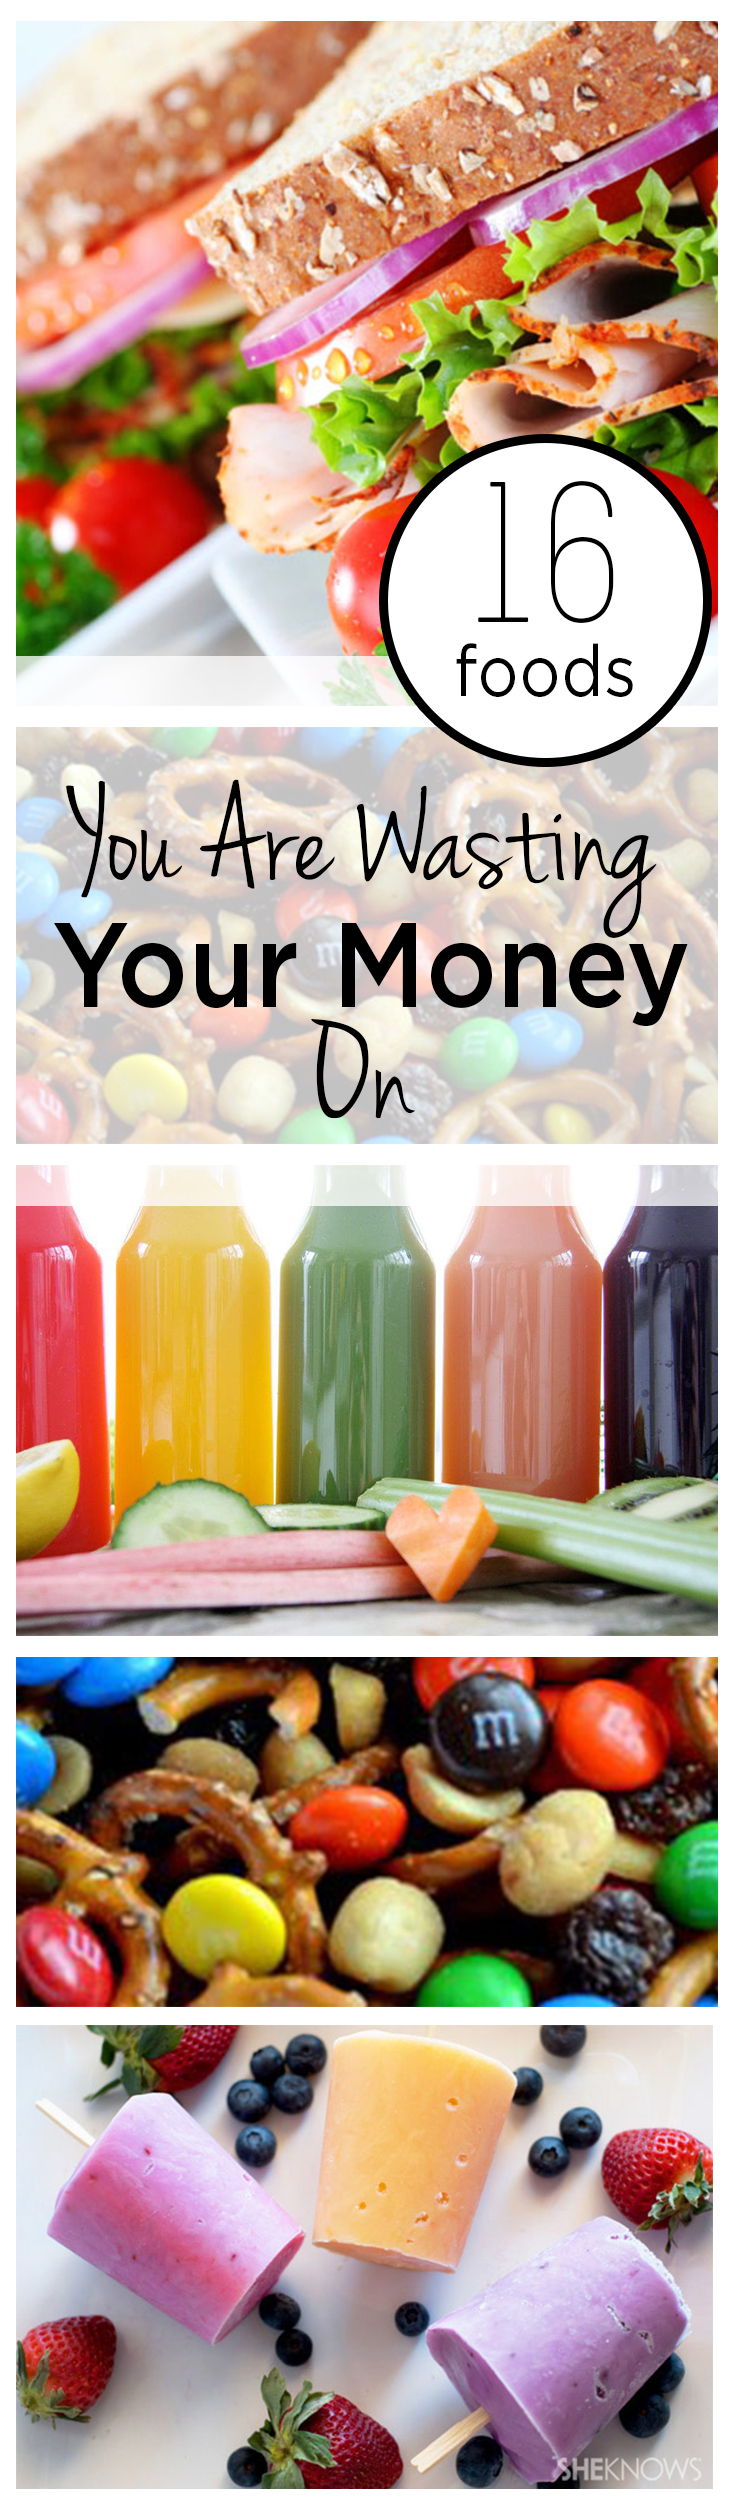 16 Foods You Are Wasting Your Money On (1)